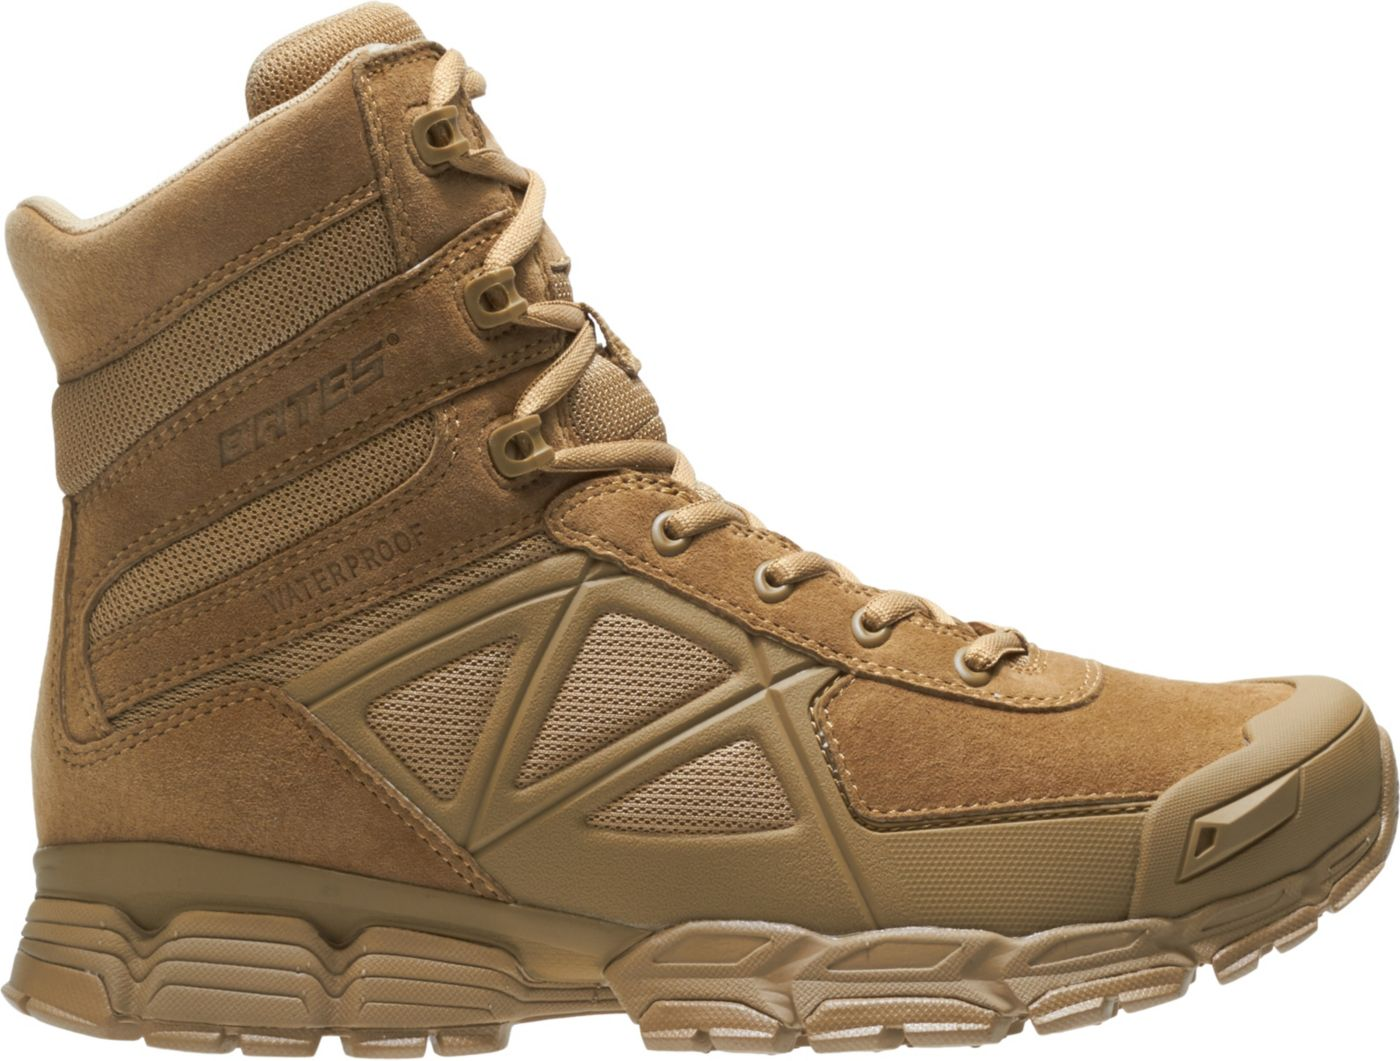 Bates Men's Velocitor Waterproof Work Boots